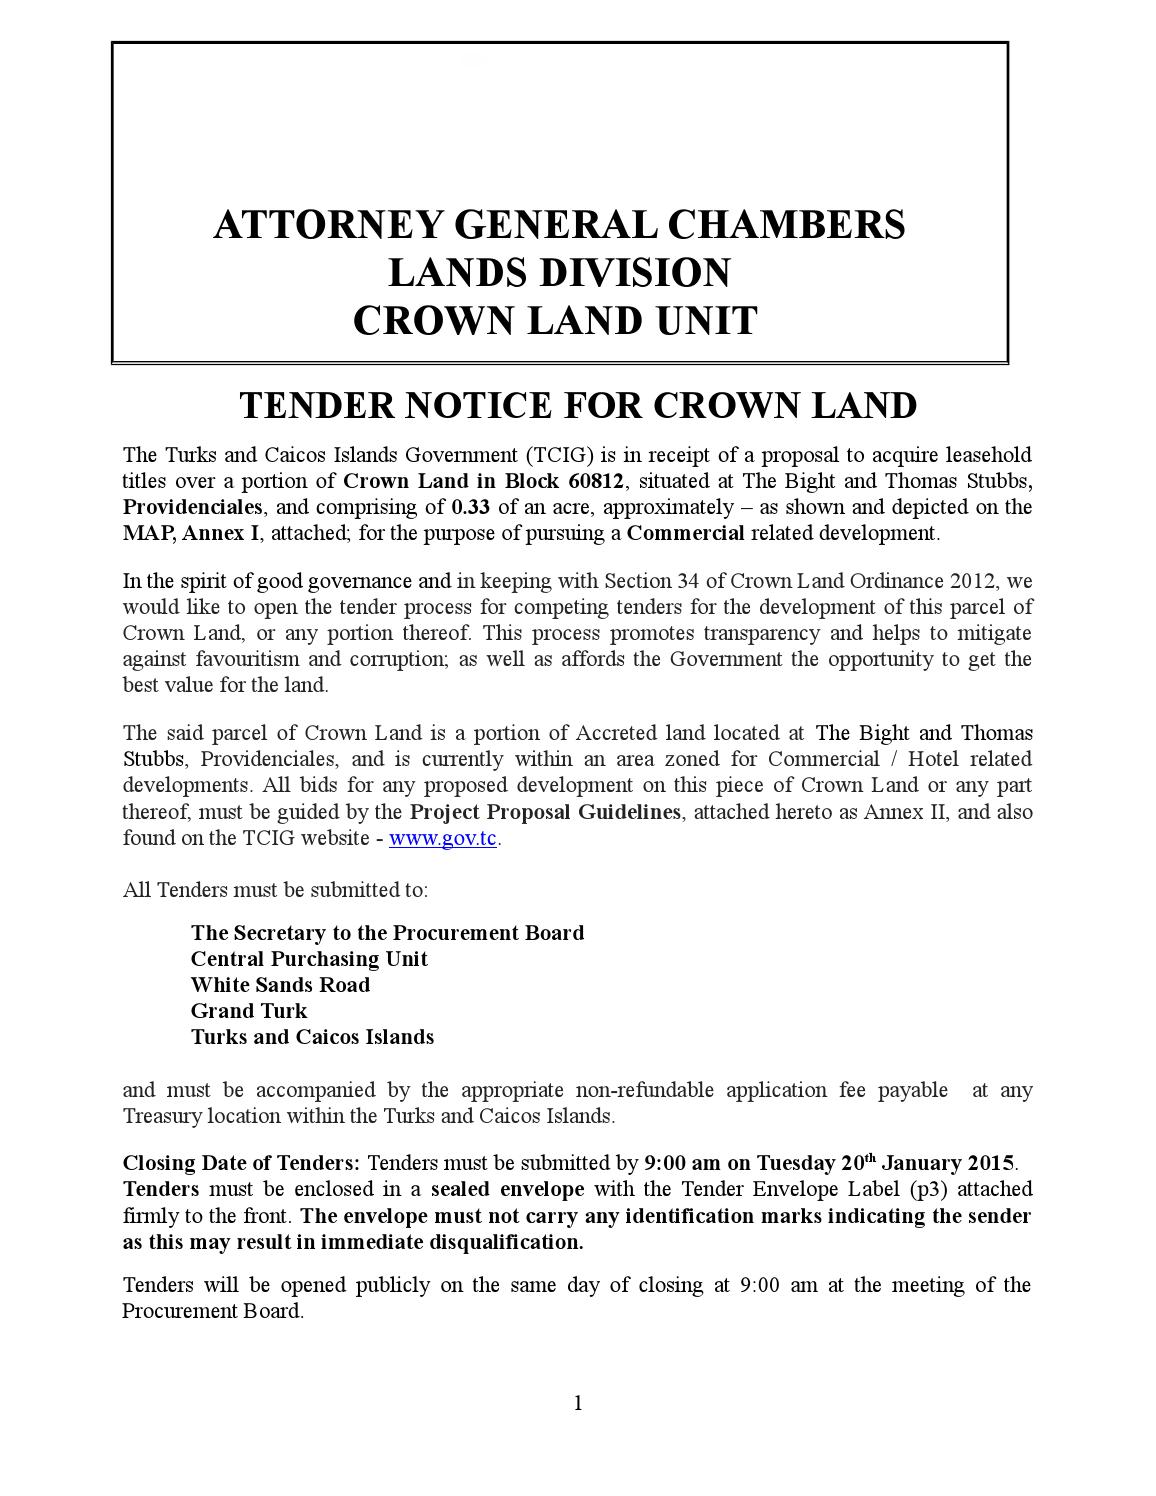 Tender notice crown land in block 60812(accreted land